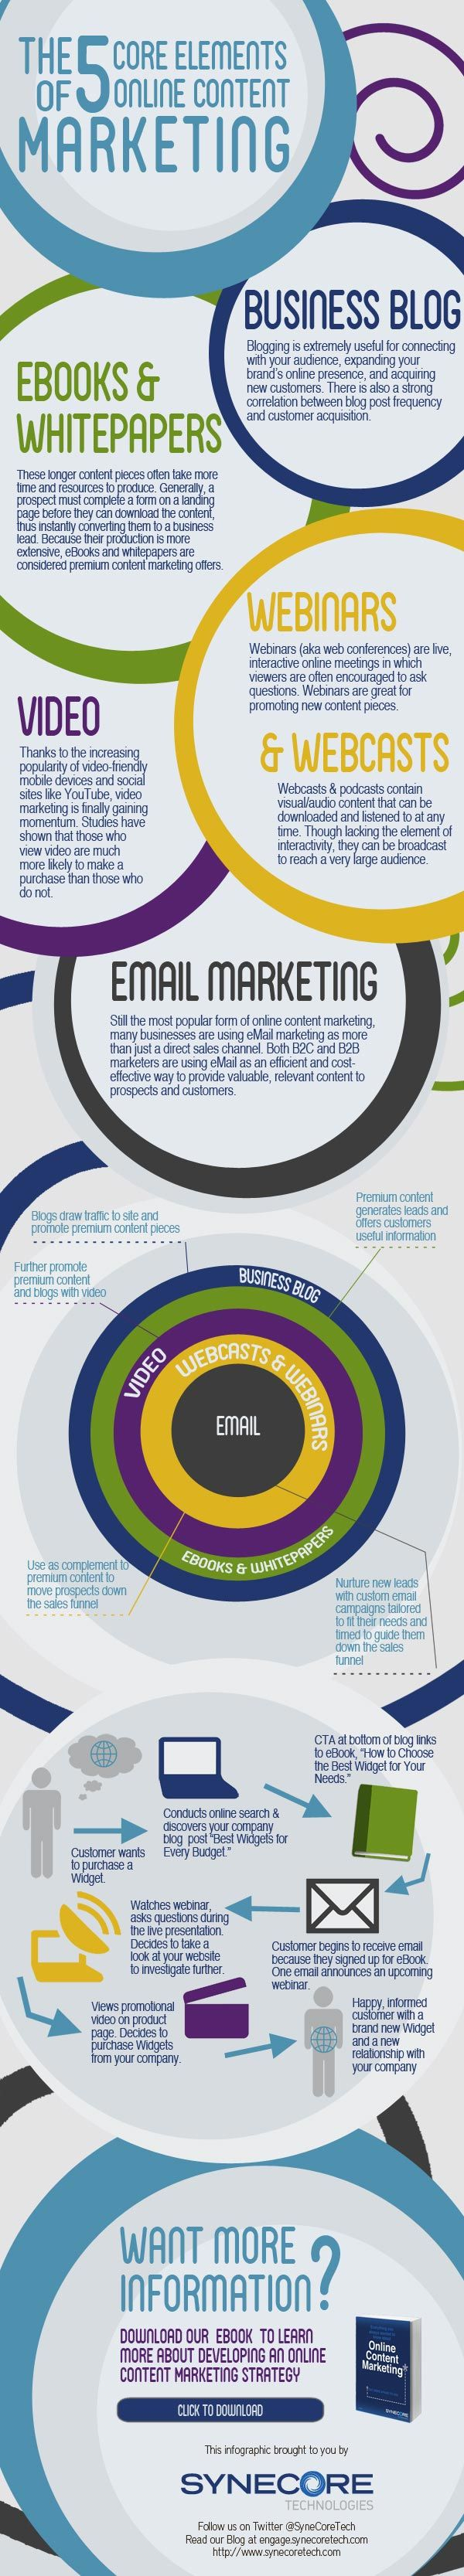 As a digital marketer you always have to keep looking for new ideas to interact with your interest-based audience, and content marketing is the most preferred way to boost your presence in the online businesses. By learning the core content marketing strategies you can deliver your brand messages efficiently. This infographic outlining the 5 core elements of online content marketing. https://www.udemy.com/inbound-marketing/?couponCode=pinterestoff